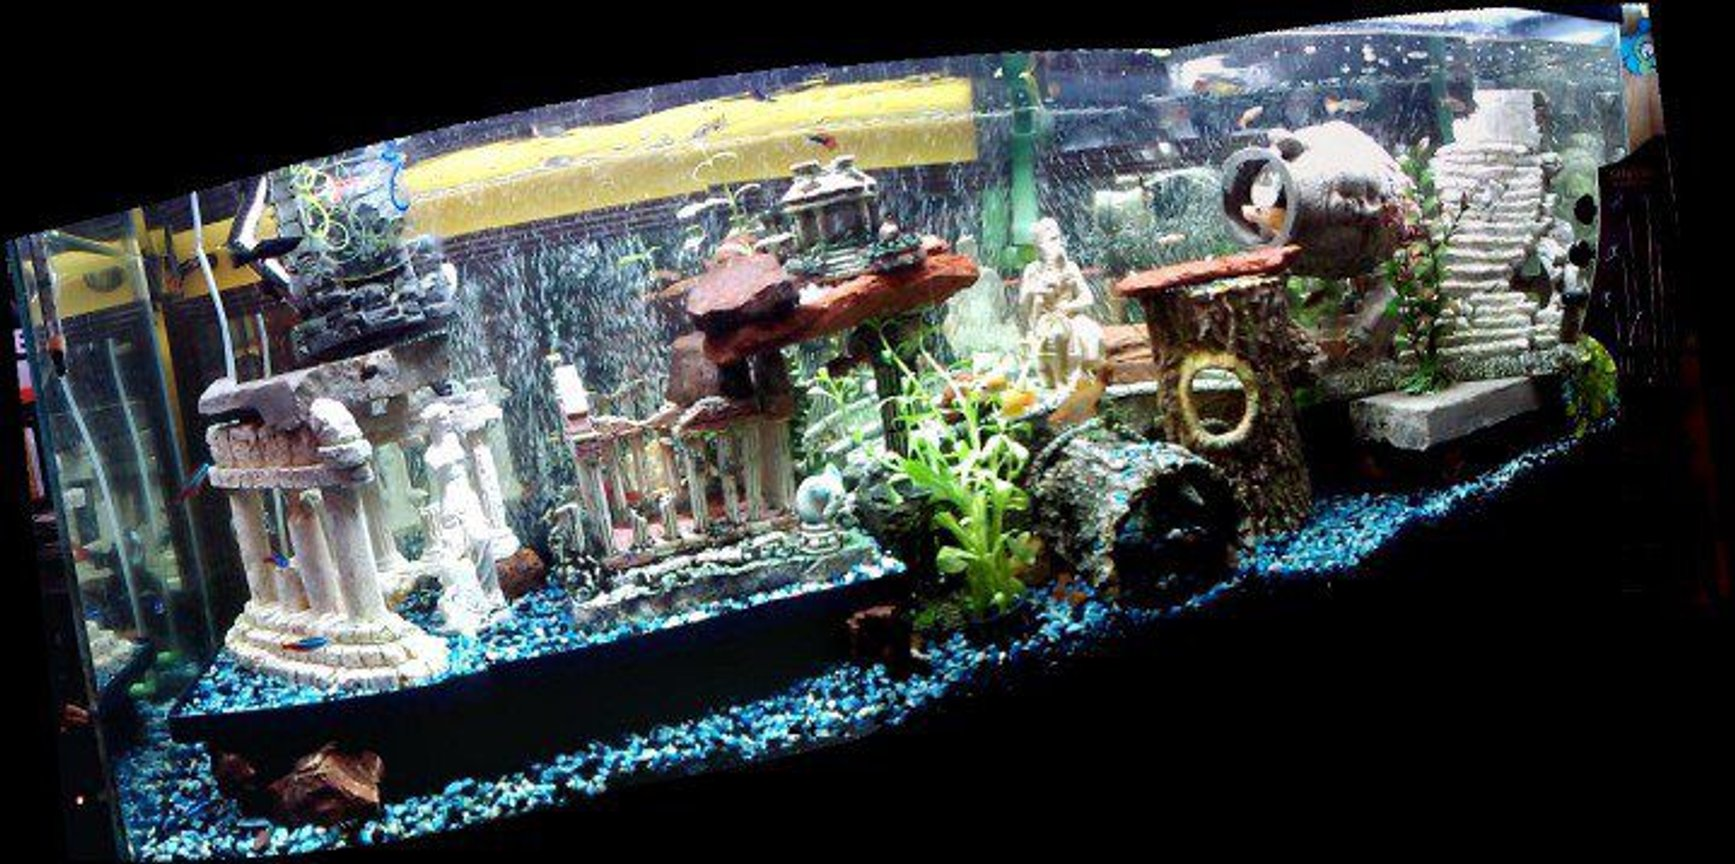 fish tank picture - This 55 gal tank is connected by a bridge to another 55 gal planted tank. This tank is not planted, and built around the idea of vertical levels, all the decor is elevated by about 2 inches from the ground, creating plenty of cave like hiding spaces.